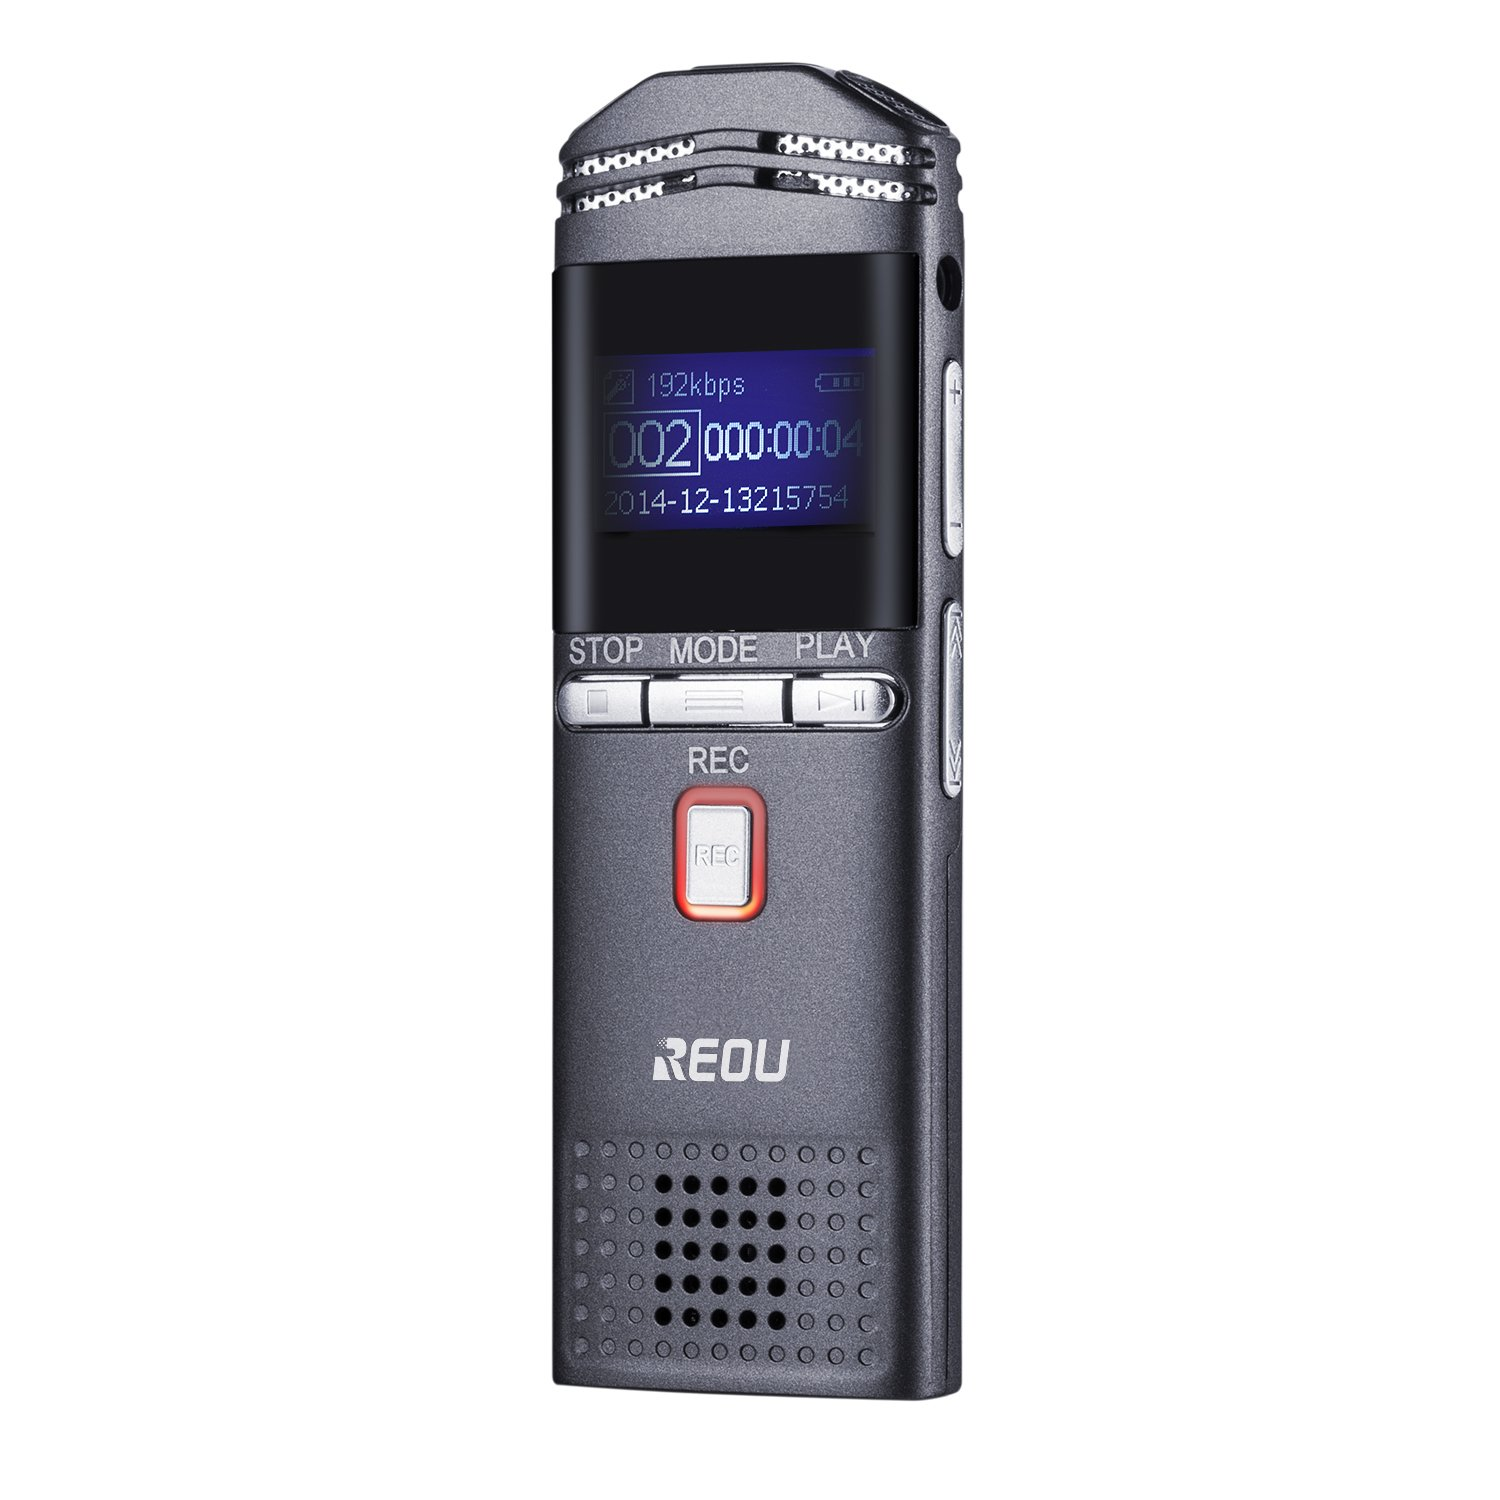 REOU Digital Voice Recorder Landline Call Sound Recorder, 4GB Voice Activated Recorder with MP3 Player, DSP Noise Reduction, Up to 128GB, for Interview, Learning, etc.